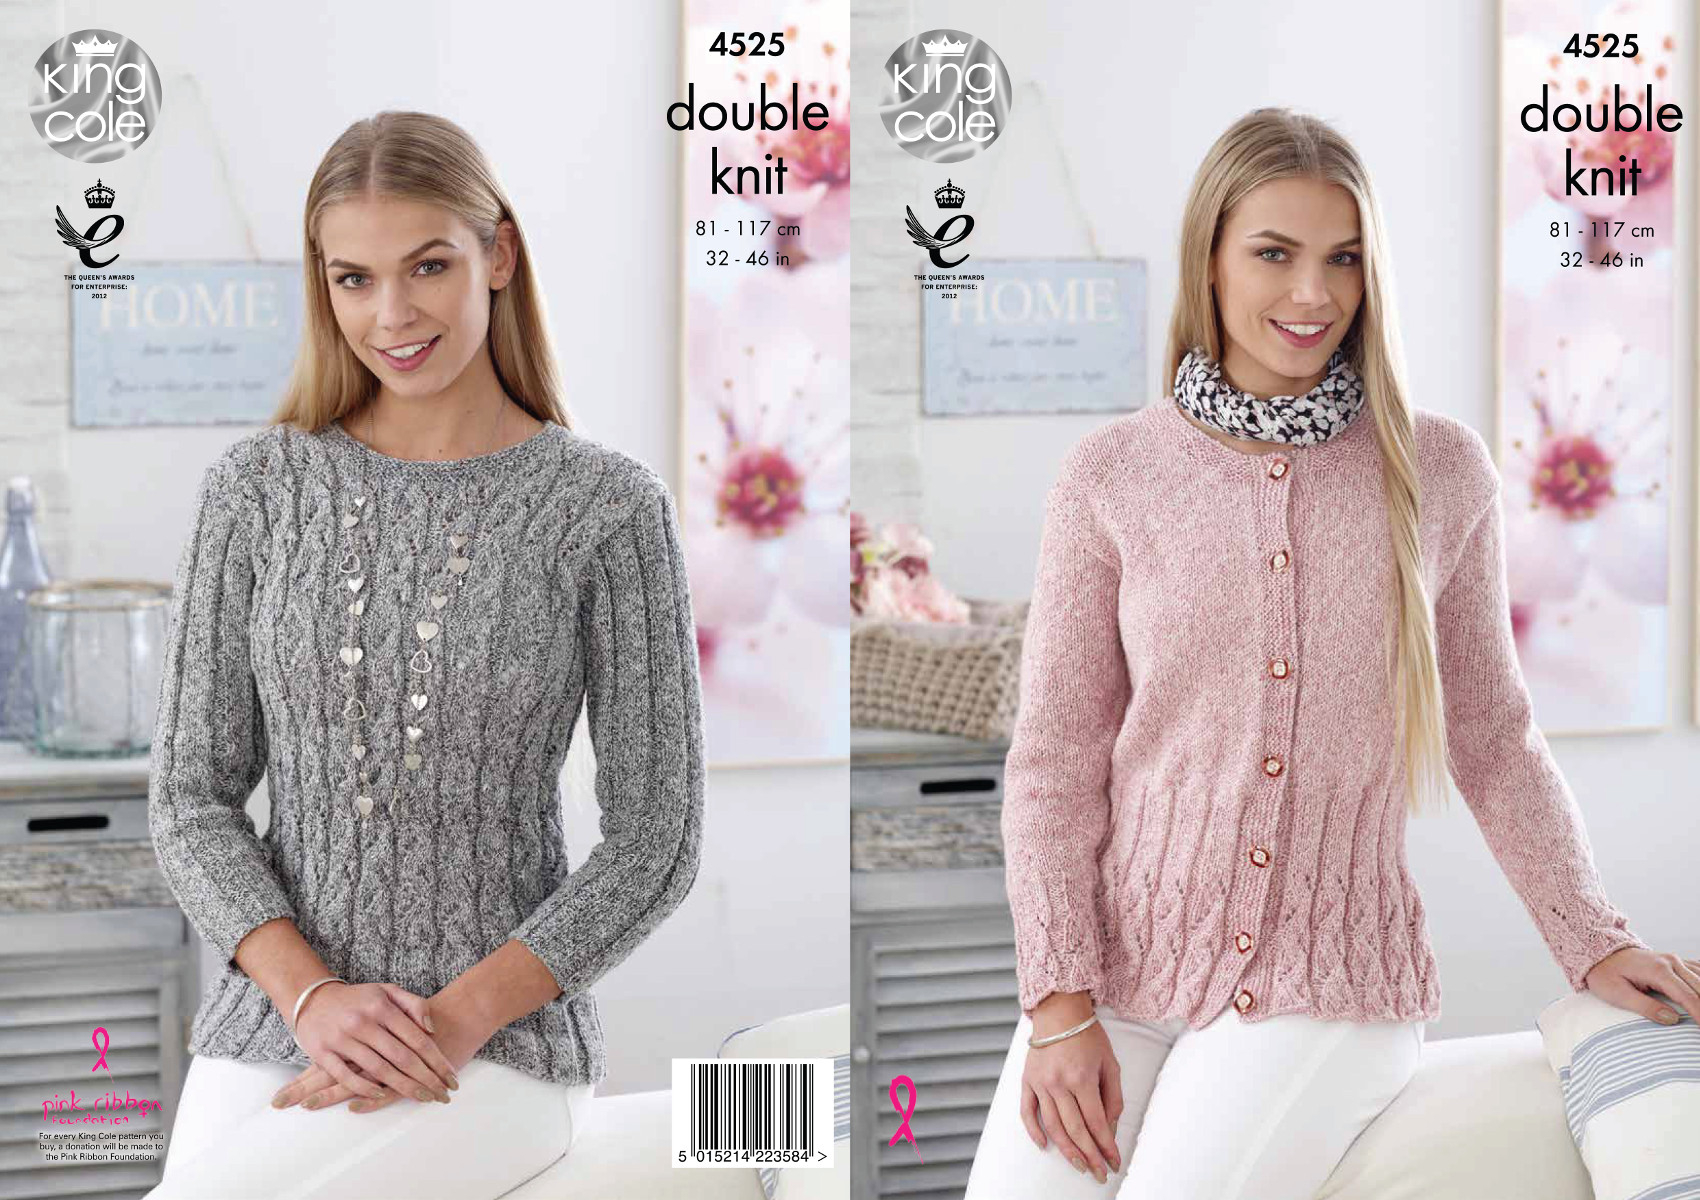 Knitting Patterns For Women Details About Ladies Lacy Cardigan Sweater Knitting Pattern King Cole Authentic Dk 4525